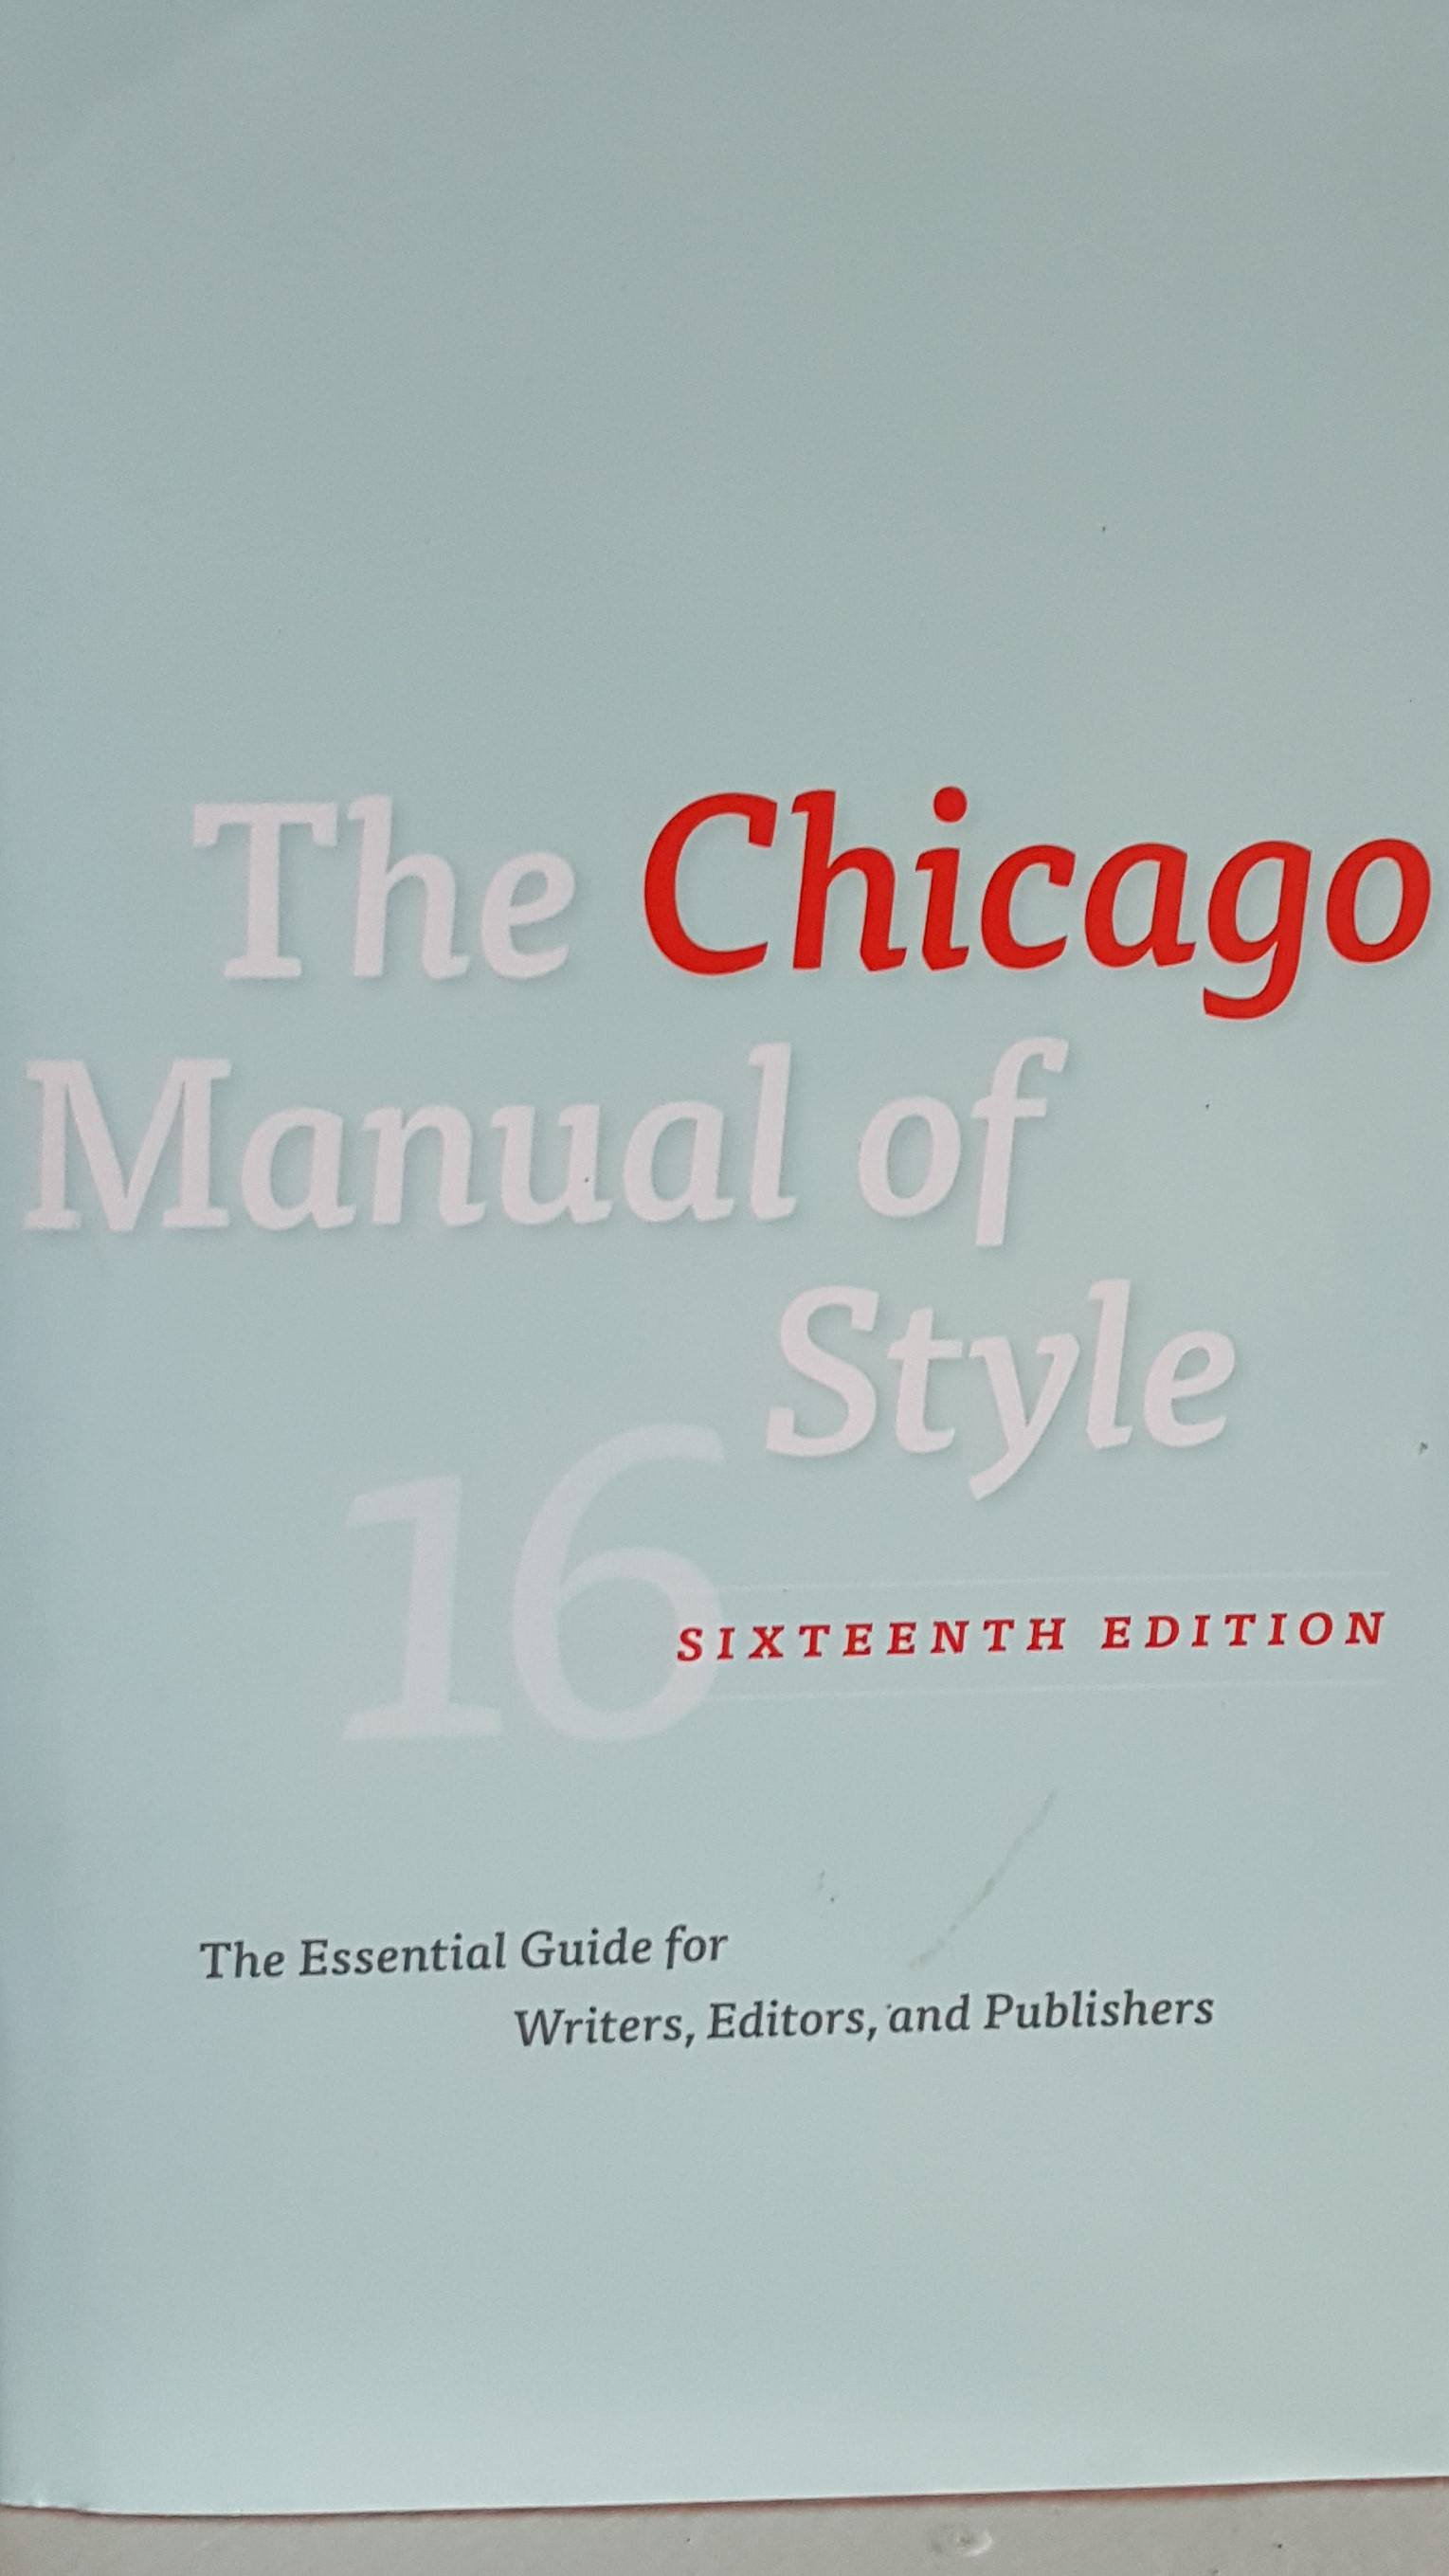 Chicago Manual of Style-Proofread